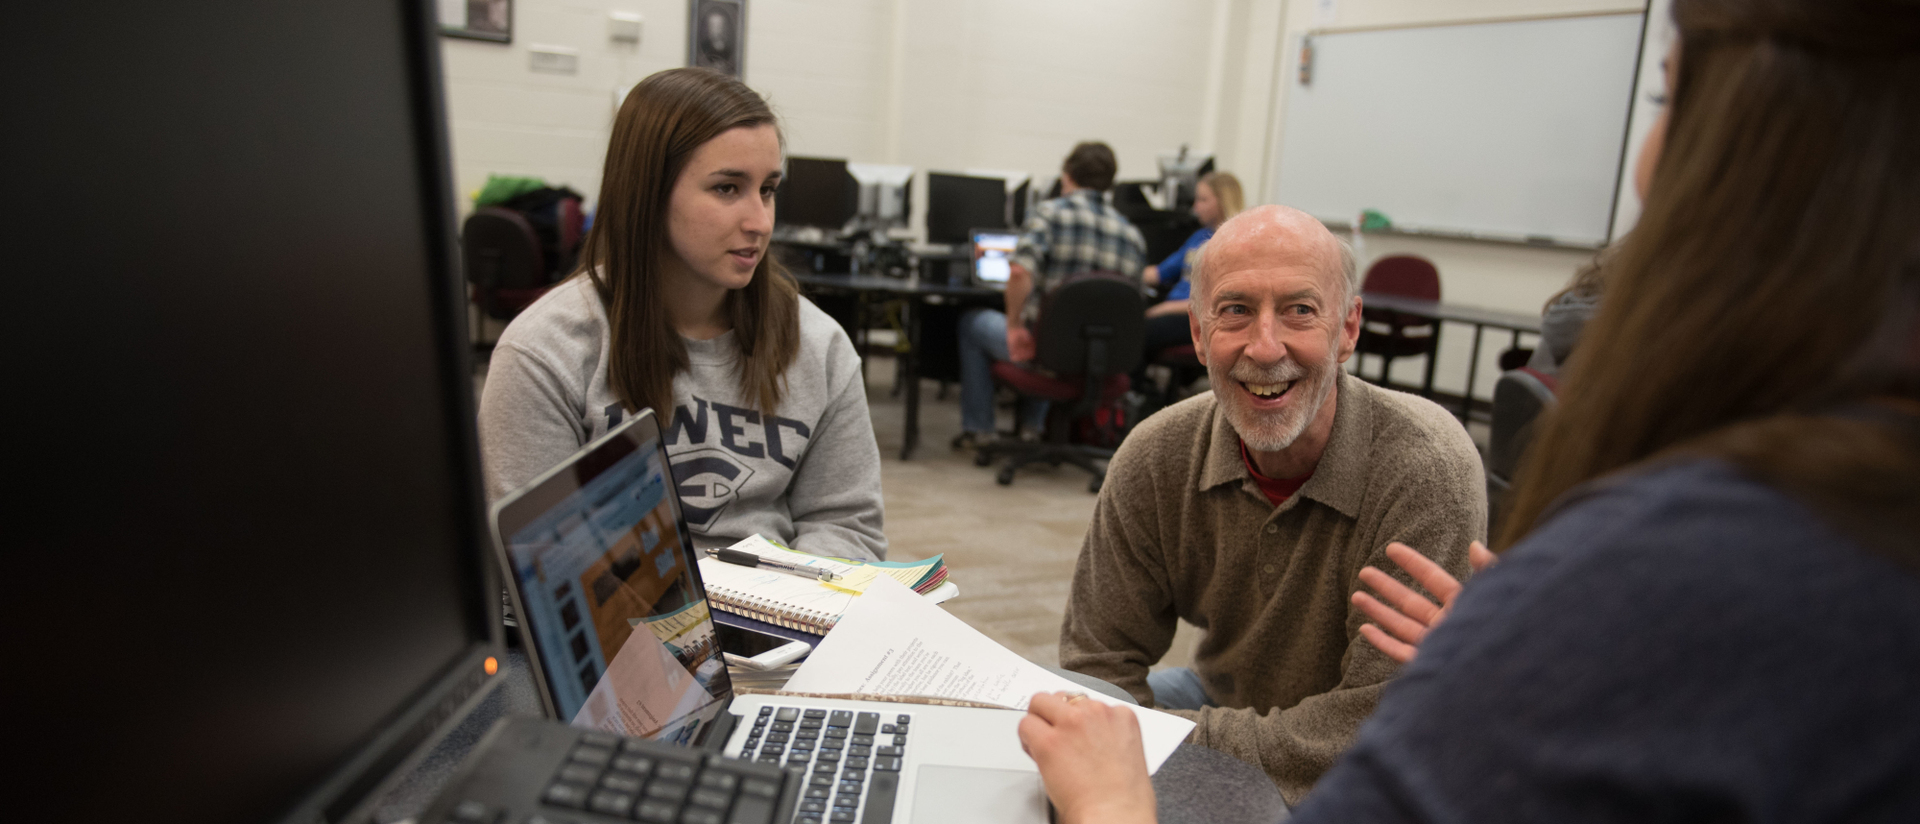 A professor working with students.